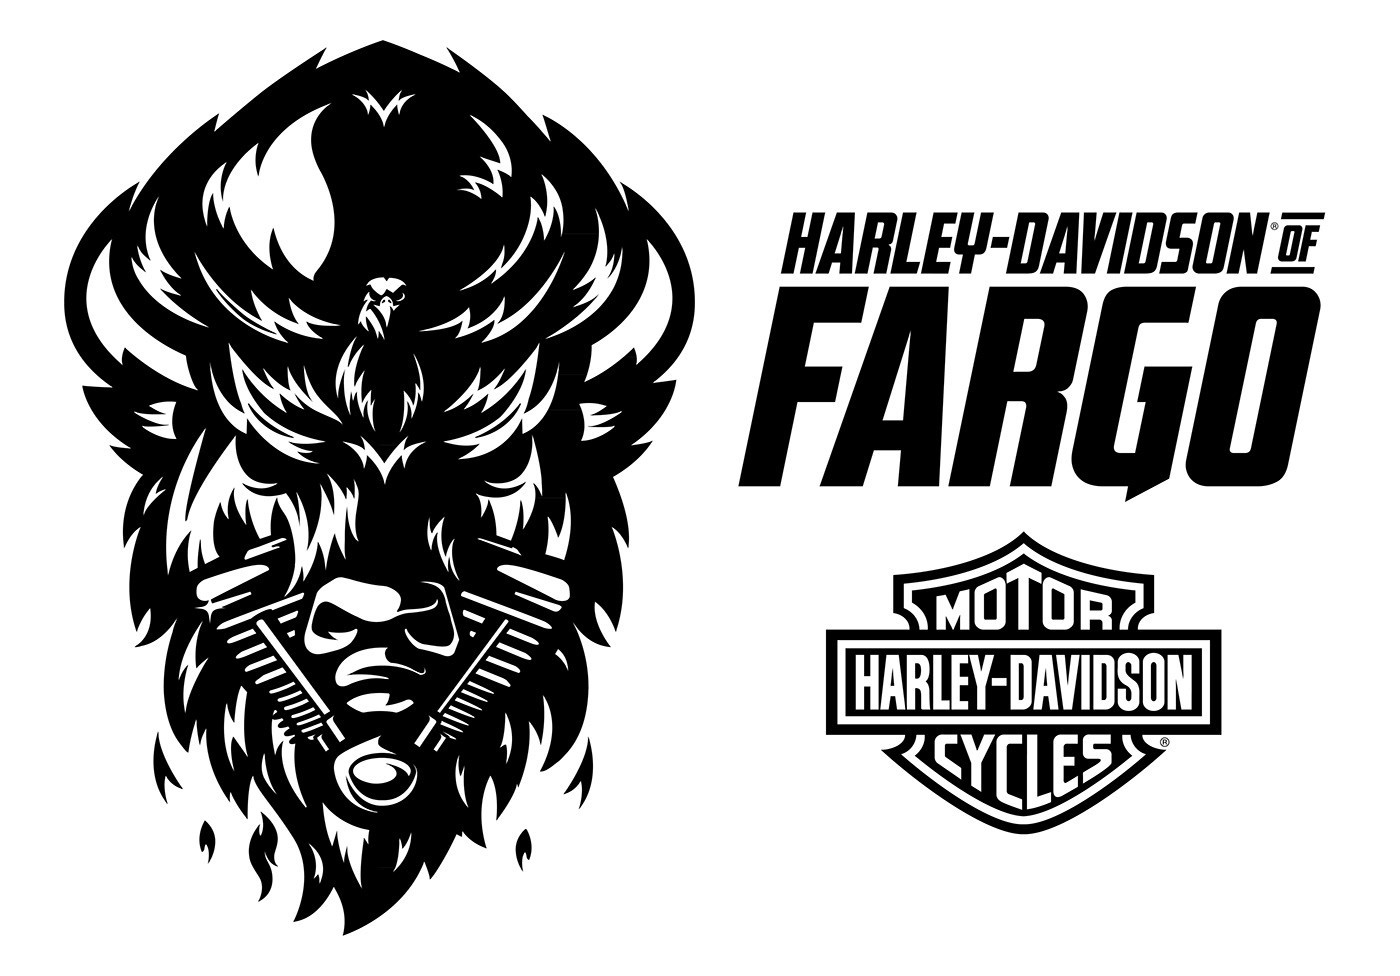 Harley Davidson Online store / Boots, shoes, clothing and accessories / Motorcycle equipment